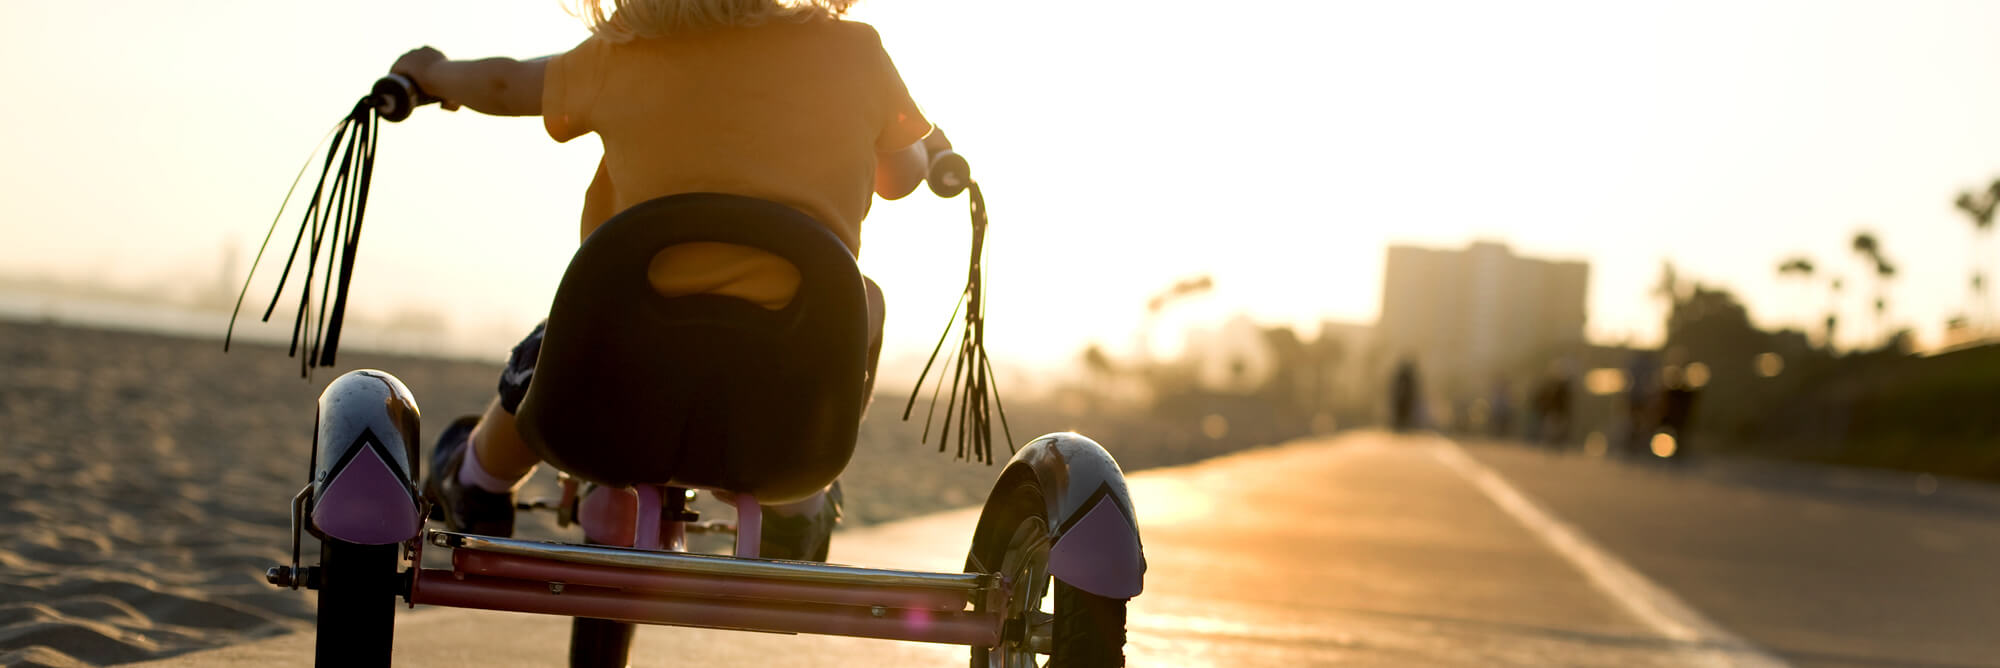 A child riding a tricycle as the sun sets in the background